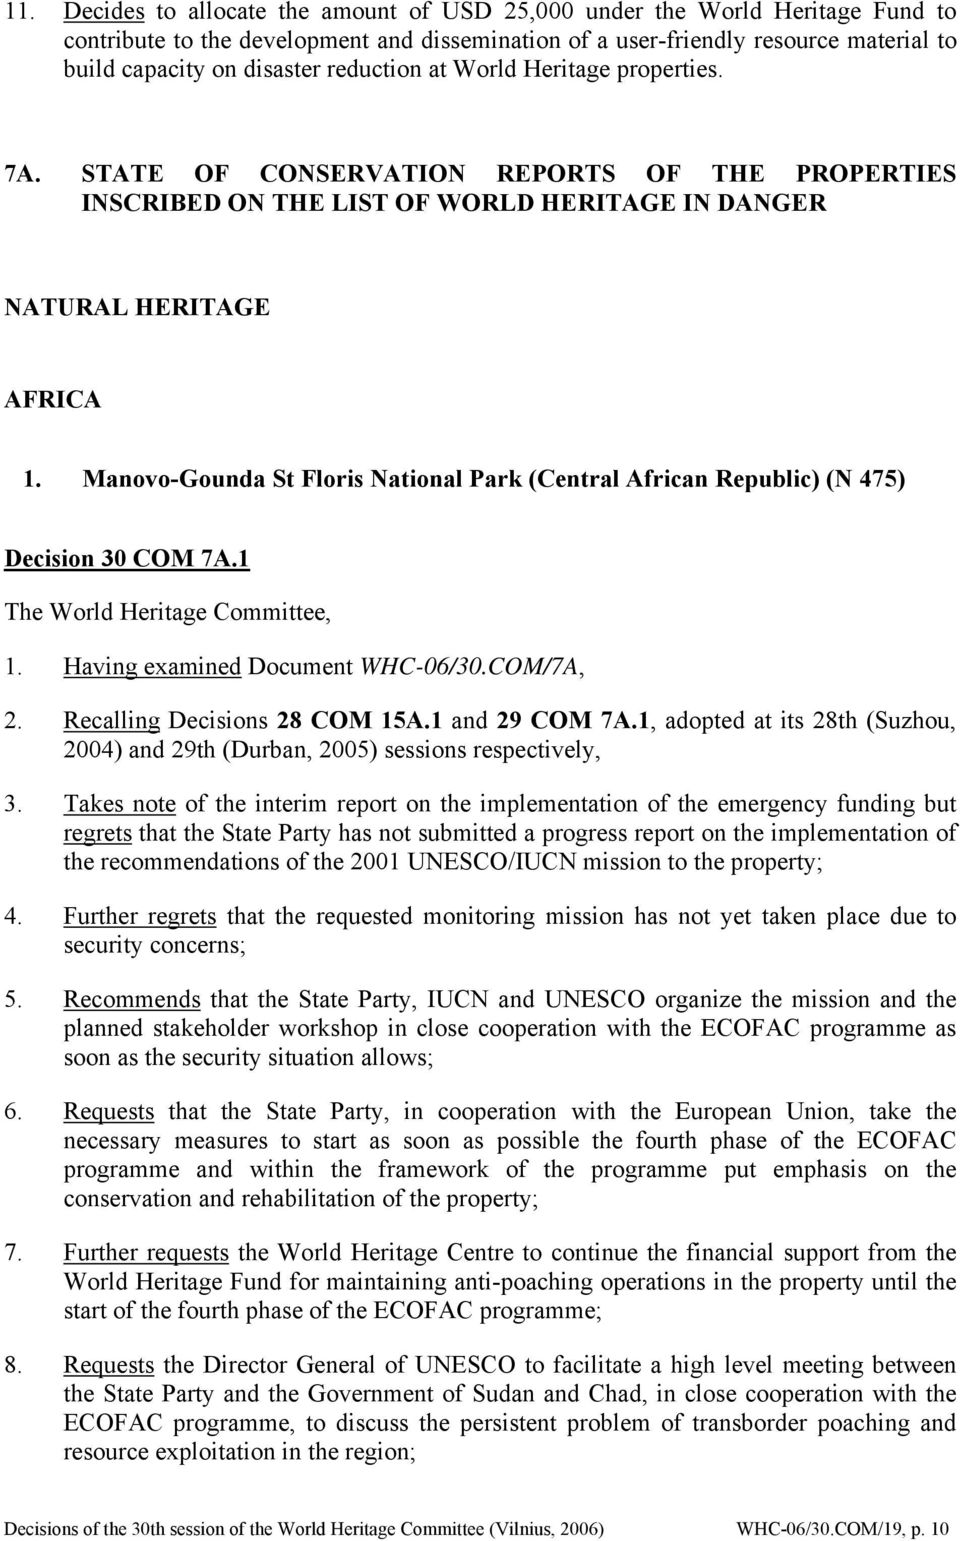 STATE OF CONSERVATION REPORTS OF THE PROPERTIES INSCRIBED ON THE LIST OF WORLD HERITAGE IN DANGER NATURAL HERITAGE AFRICA Manovo-Gounda St Floris National Park (Central African Republic) (N 475)